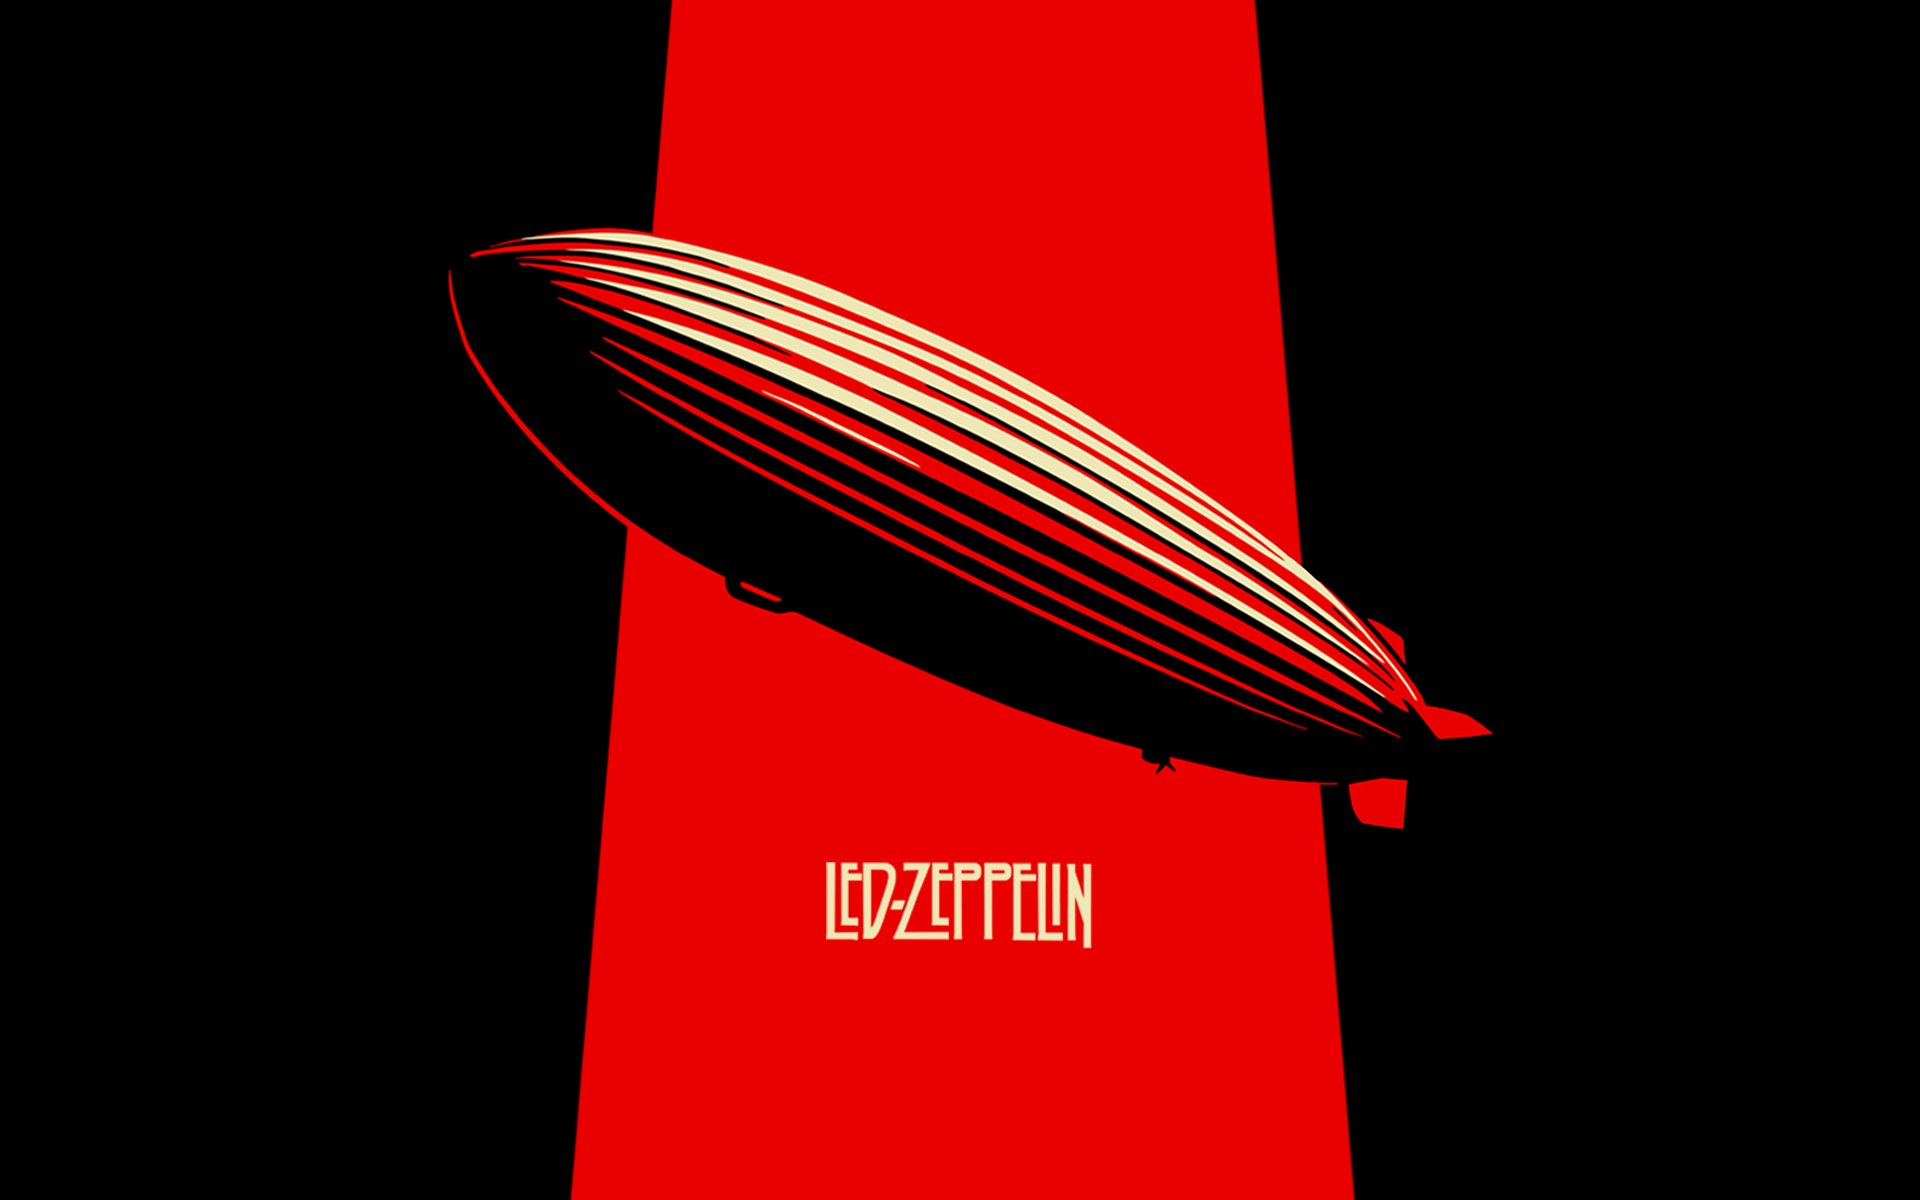 The Best Led Zeppelin Wallpapers Led Zeppelin Wallpaper Led Zeppelin Led Zeppelin Drummer